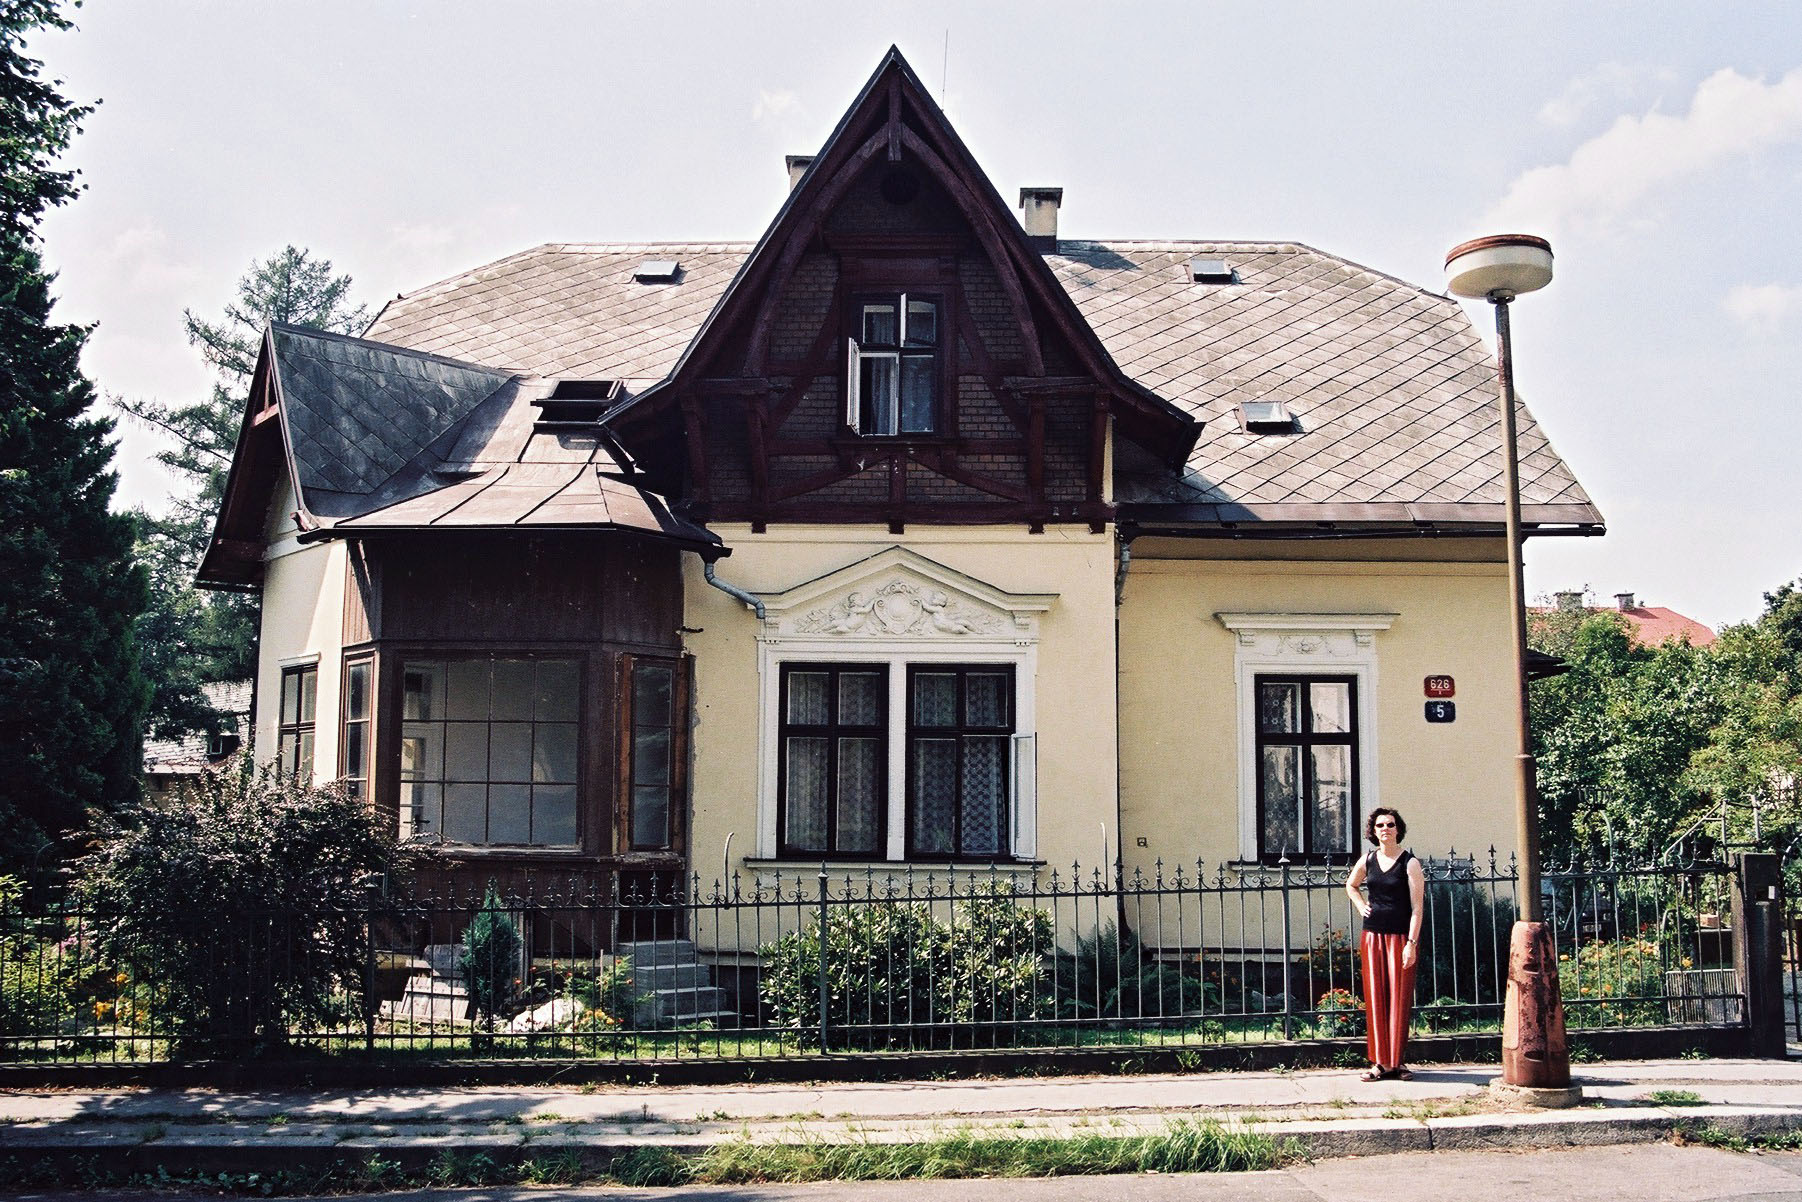 Author standing in front of her grandparents' former gabled villa in Liberec in 2002